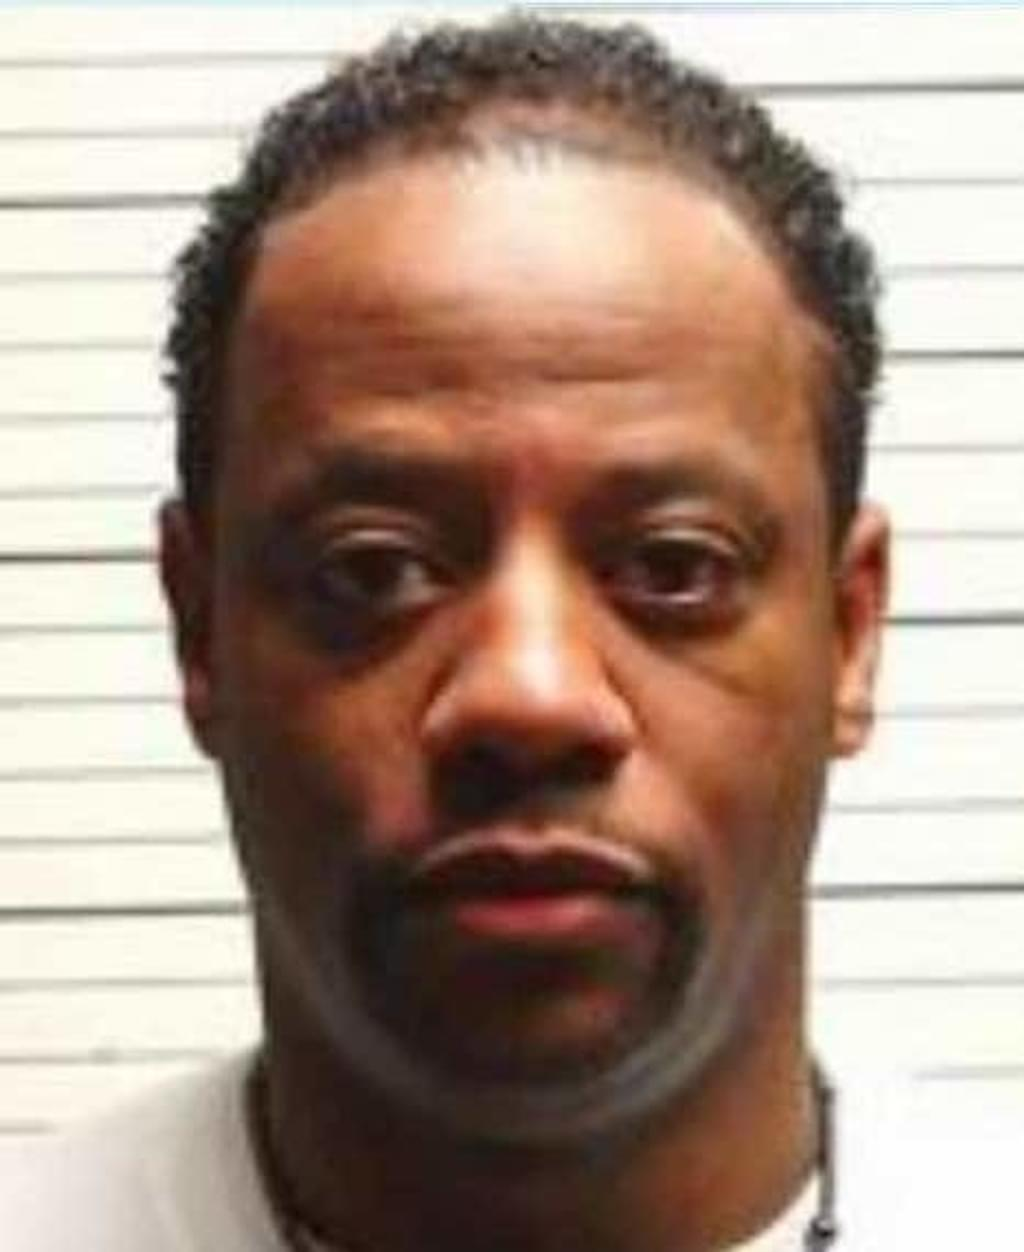 In Case Permeated with Race Bias, Tennessee Plans to Execute Possibly Innocent and Intellectually Disabled Black Man in Murder of White Woman